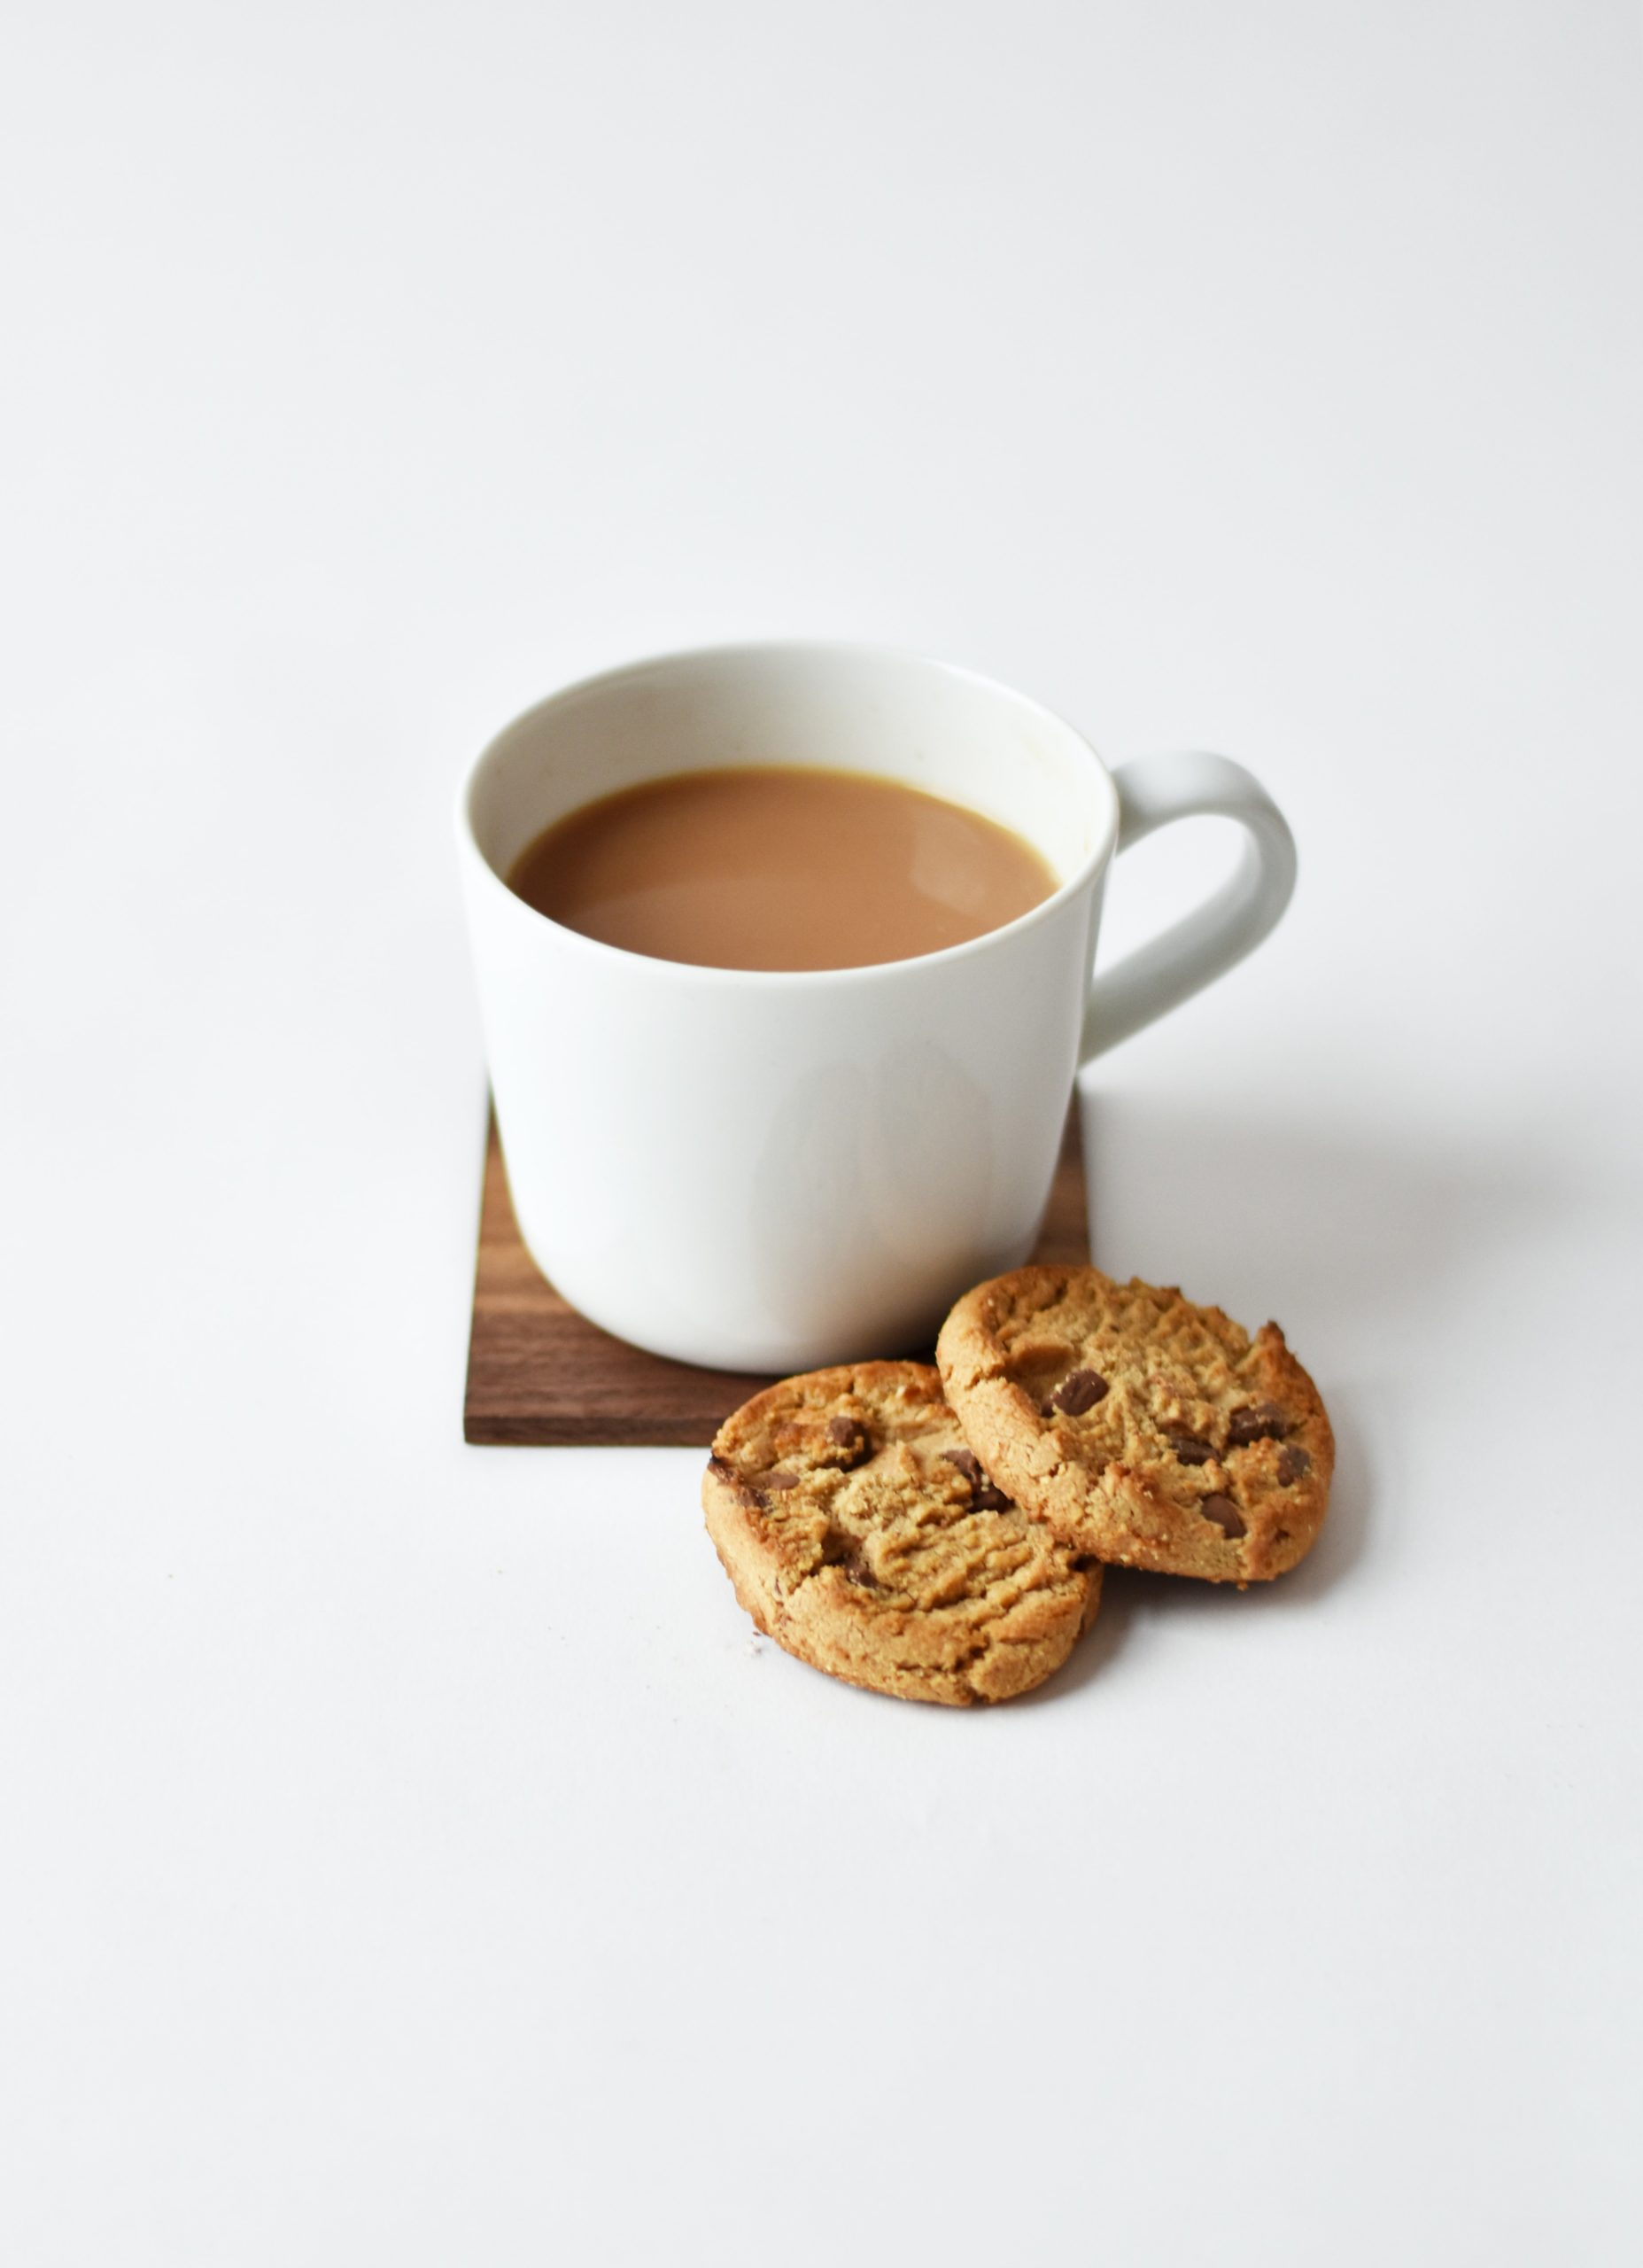 Perfect way to make a cup of tea